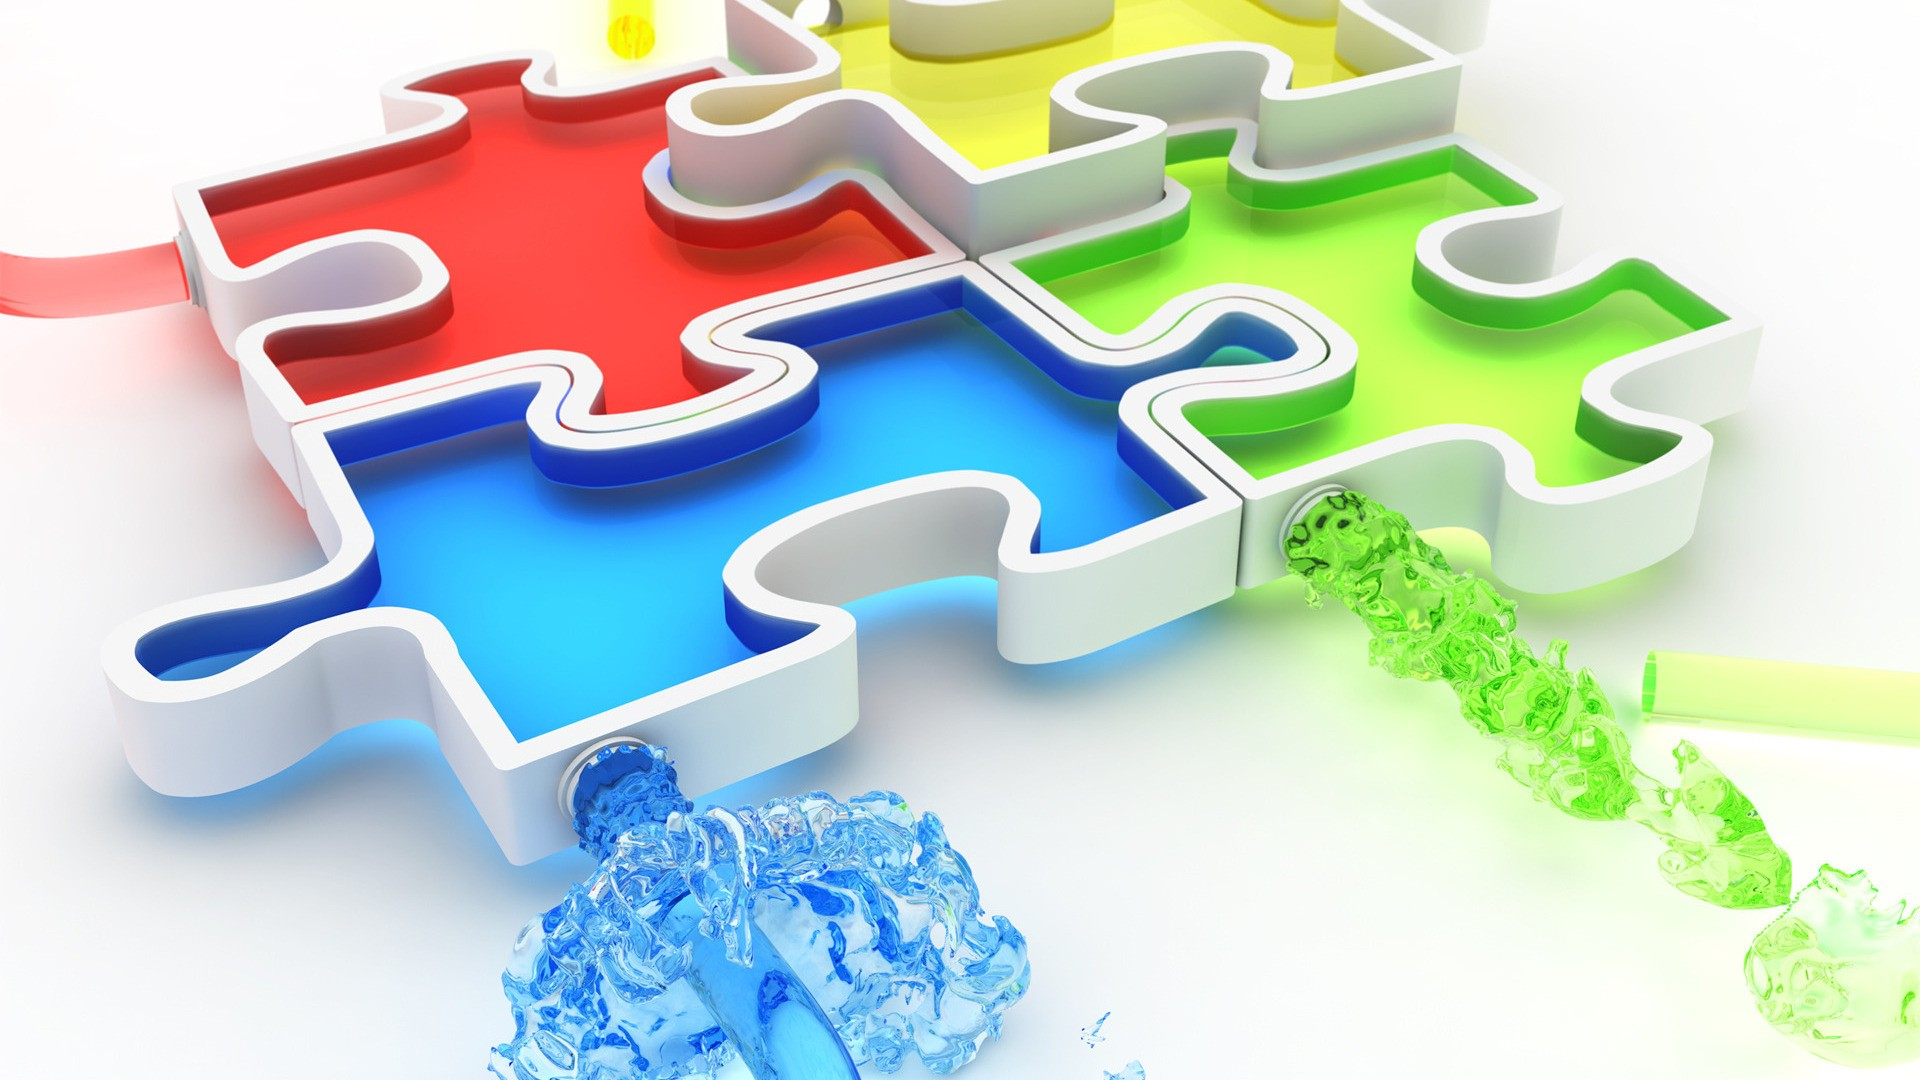 3D Multicolor Puzzle Wallpaper 53006